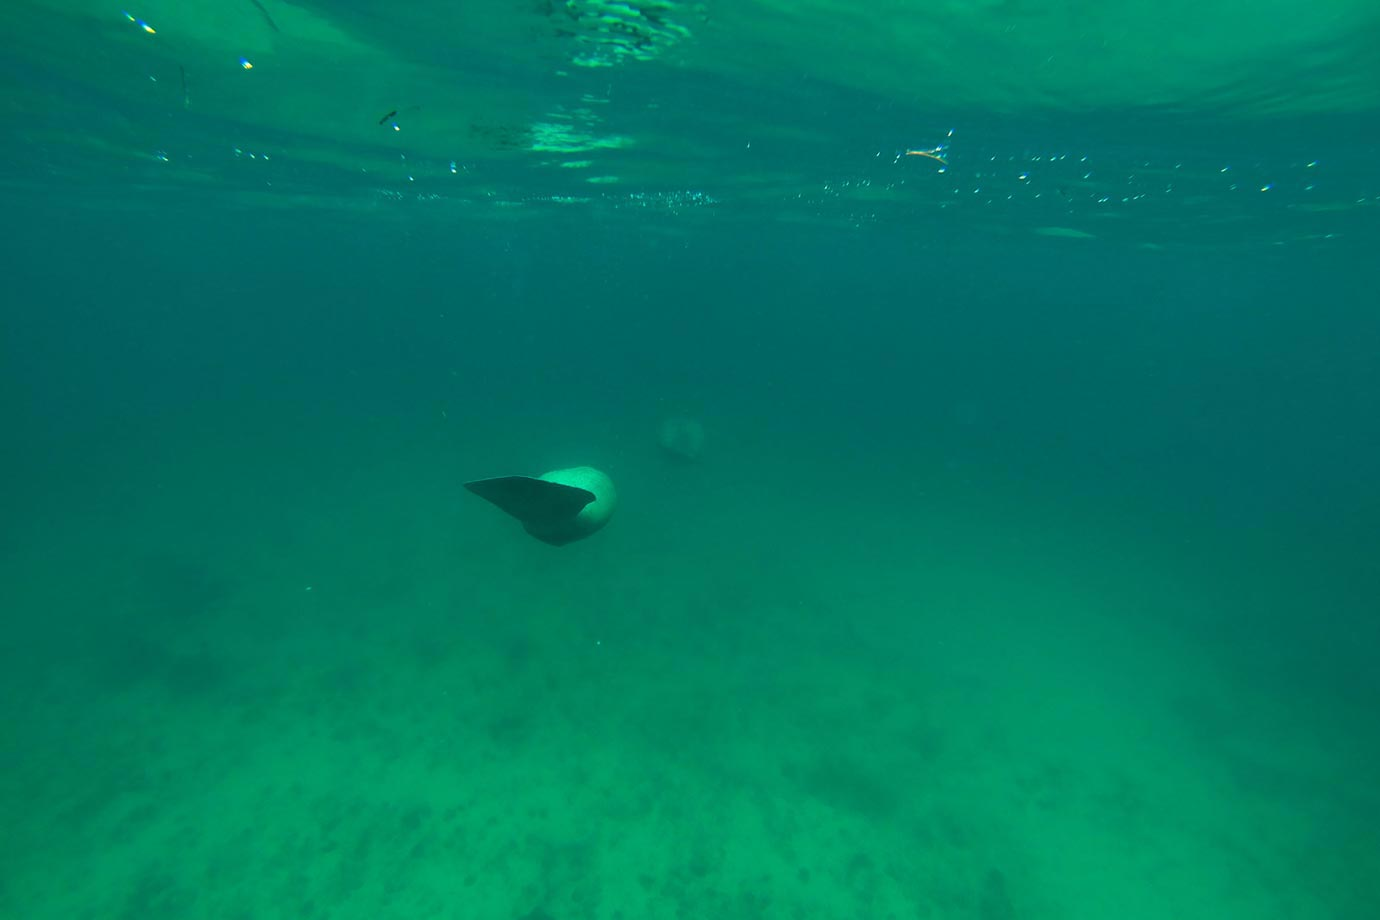 After sailing for about an hour, the first thing we came across while snorkelling were manatees